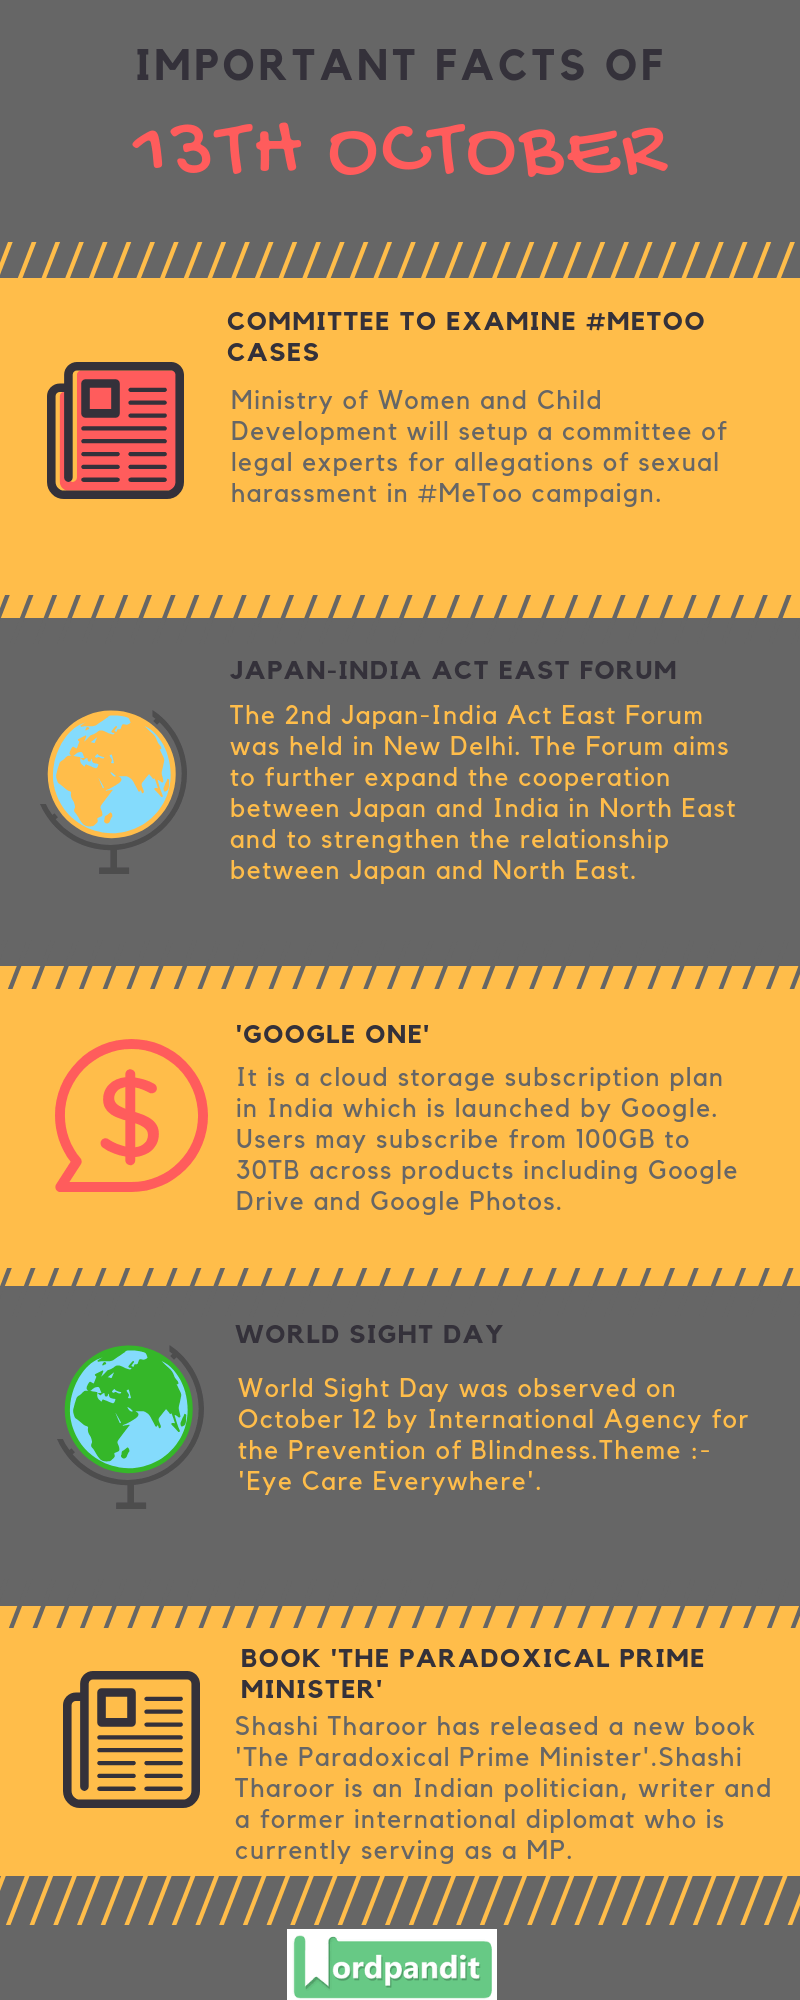 Daily Current Affairs 13 October 2018 Current Affairs Quiz 13 October 2018 Current Affairs Infographic